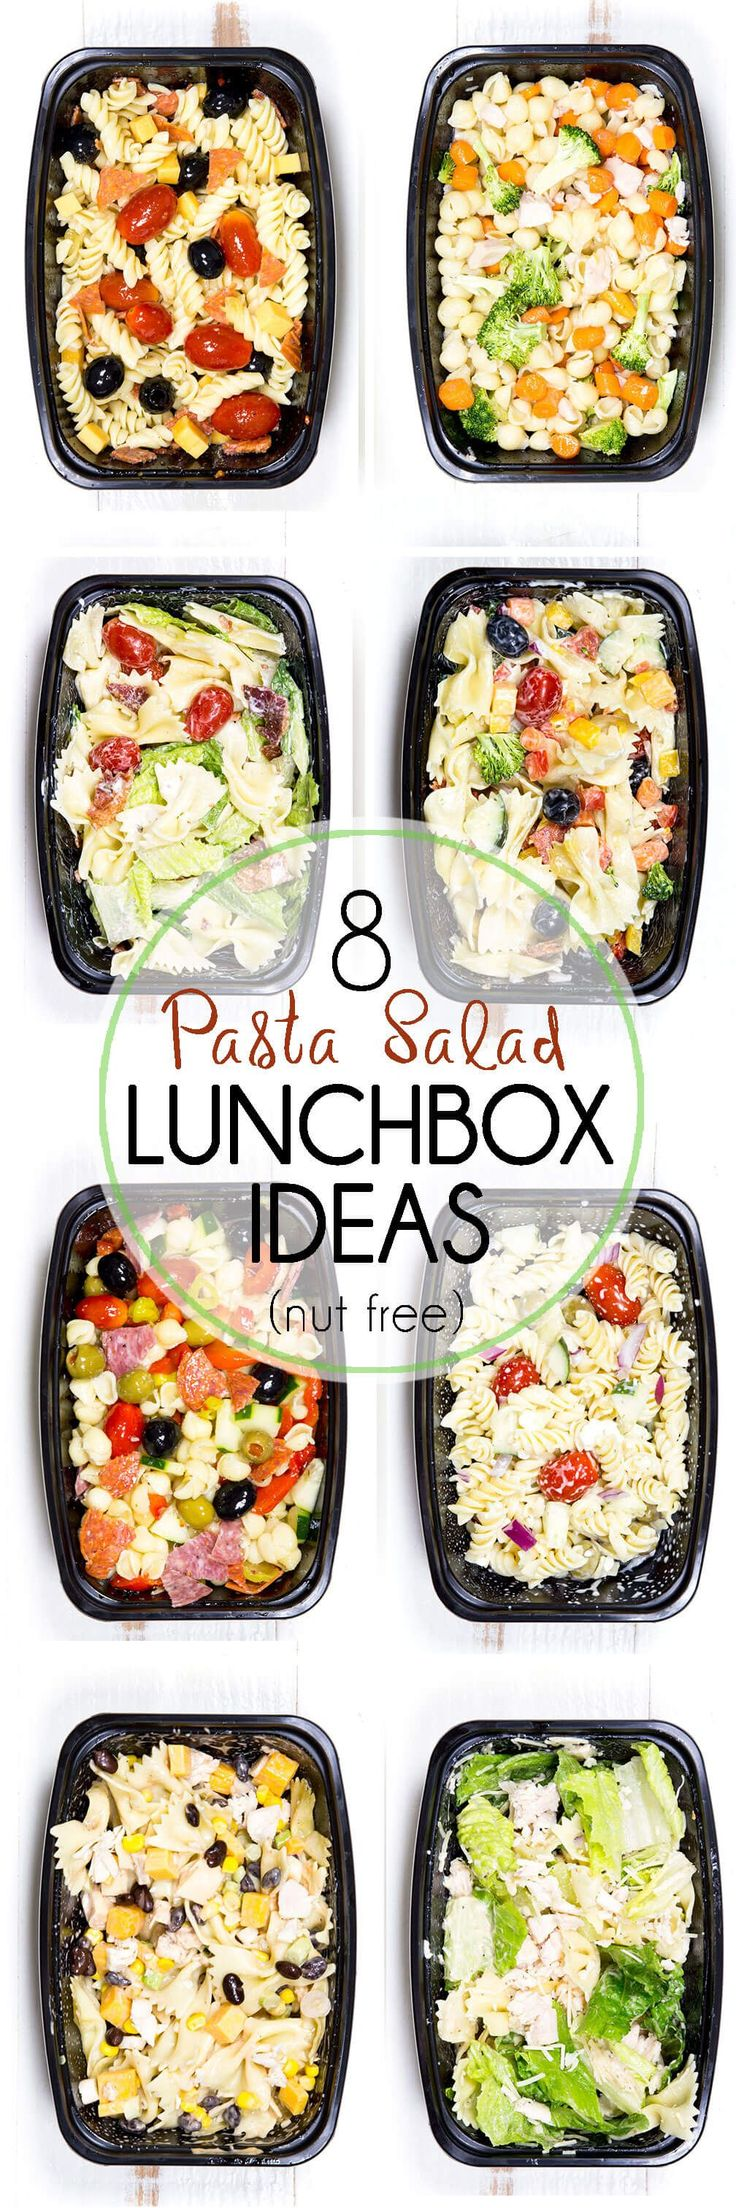 8 Pasta Salad Lunch Box Ideas, great for back to school and totally nut free. Delicious. My kids LOVED these so much.